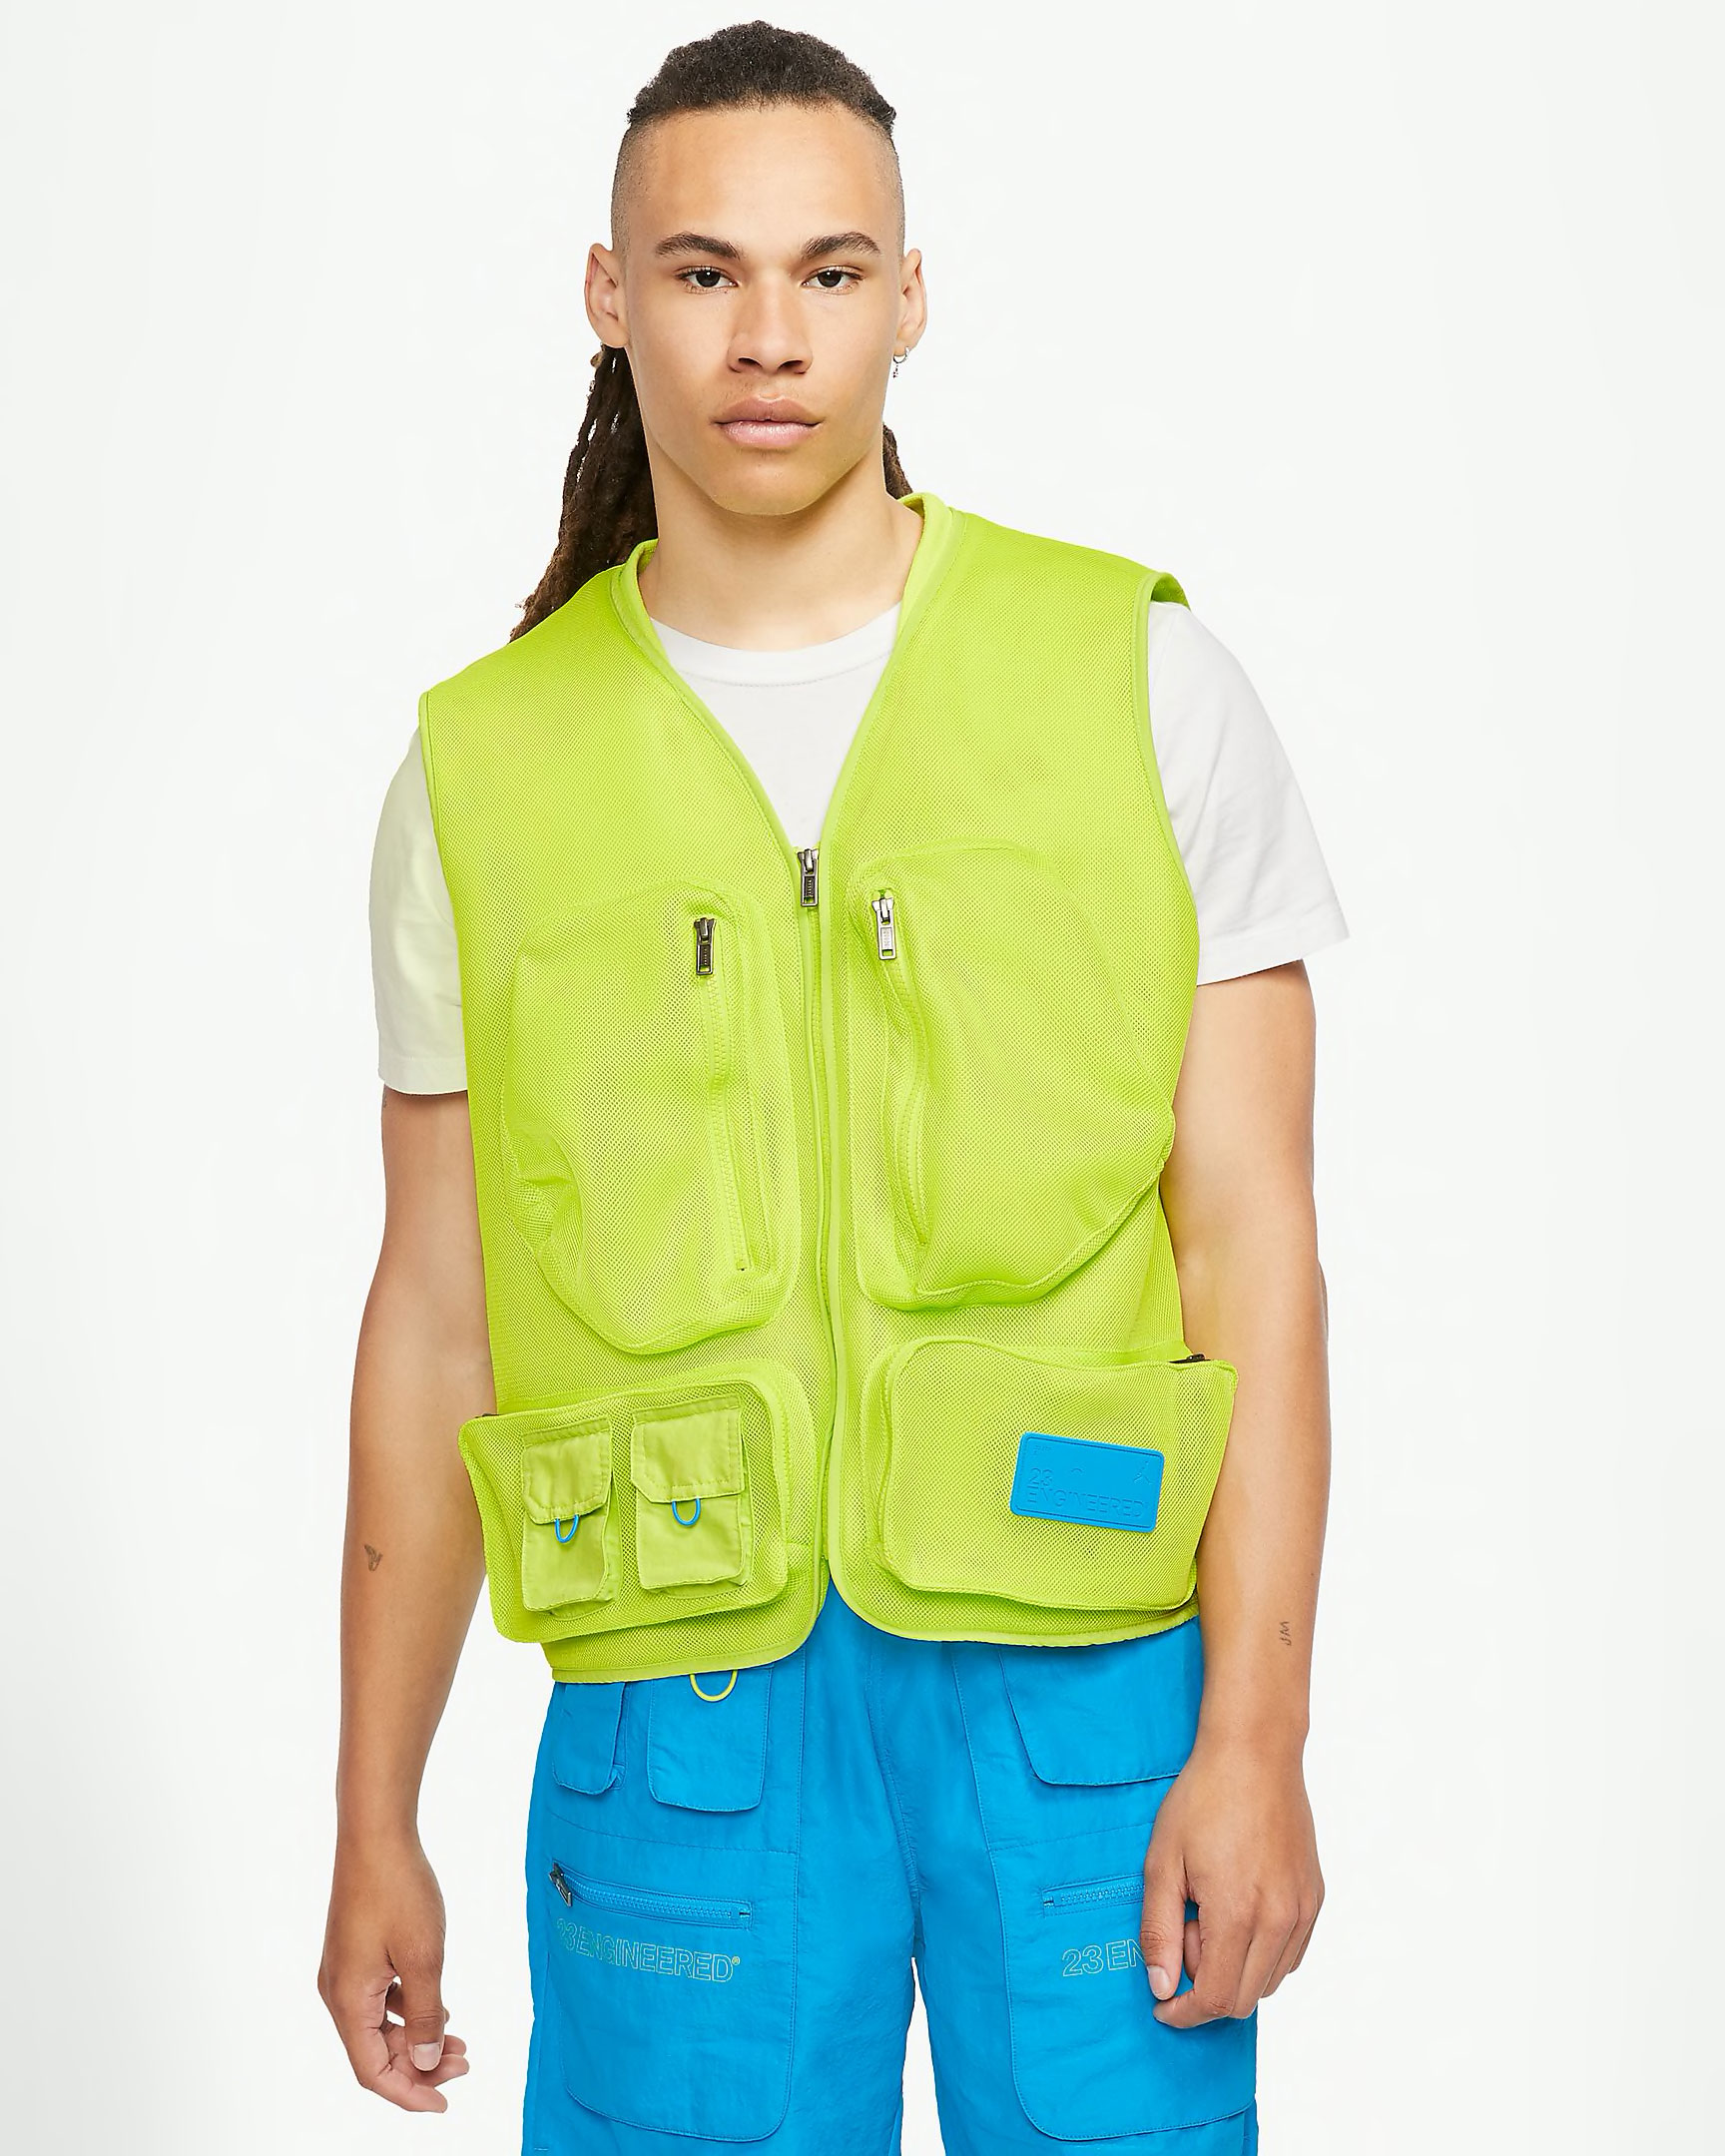 jordan-23-engineered-vest-green-blue-1